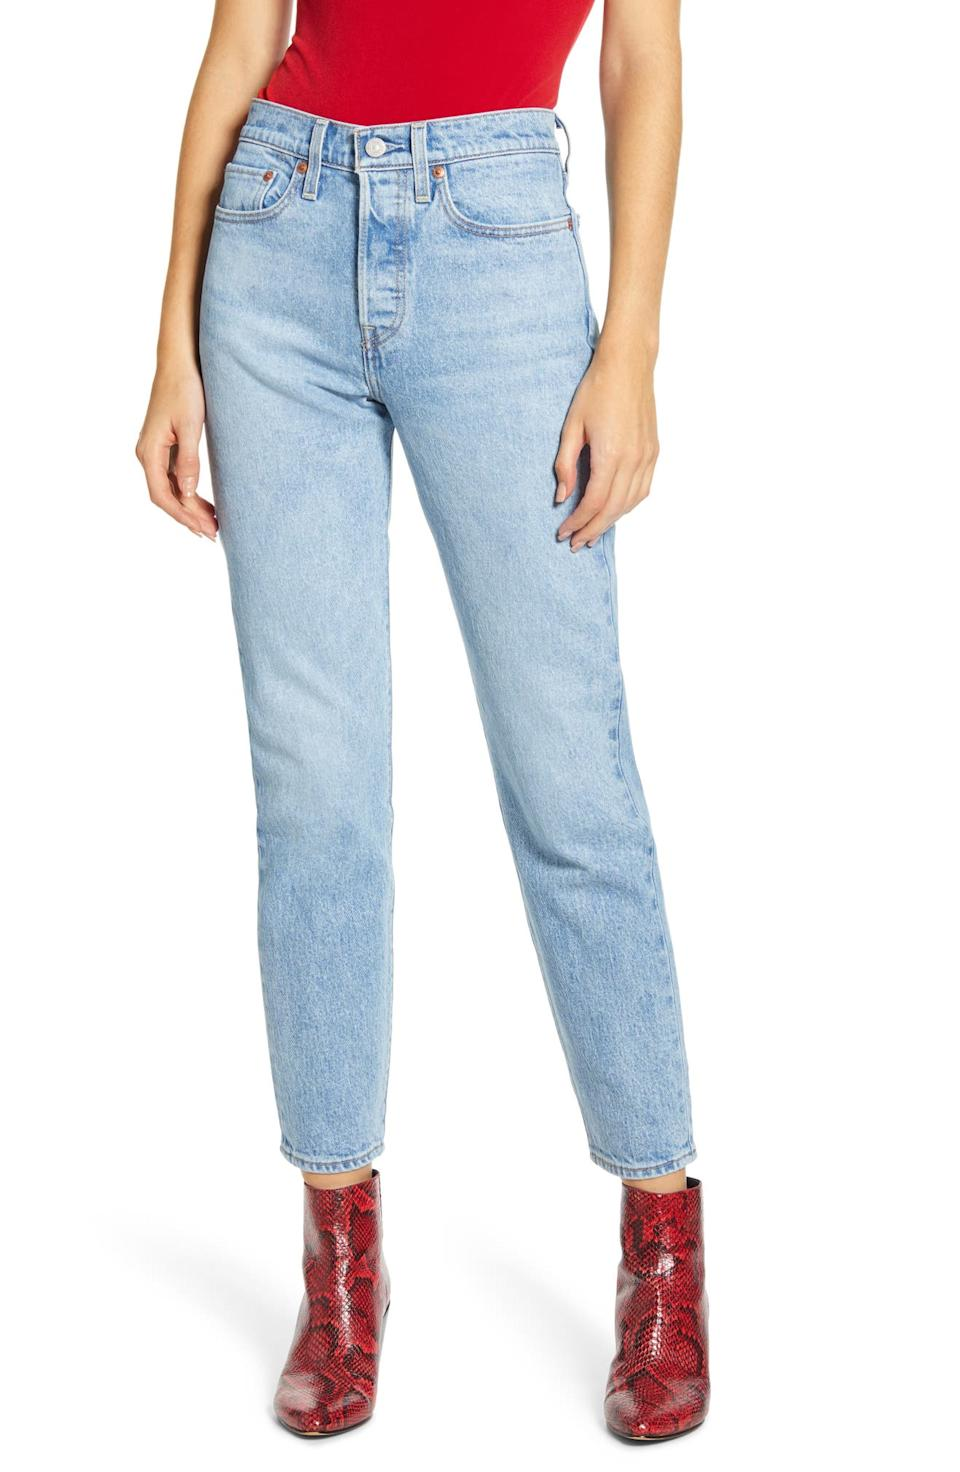 Levi's Wedgie Icon Fit High Waist Jeans. Image via Nordstrom.